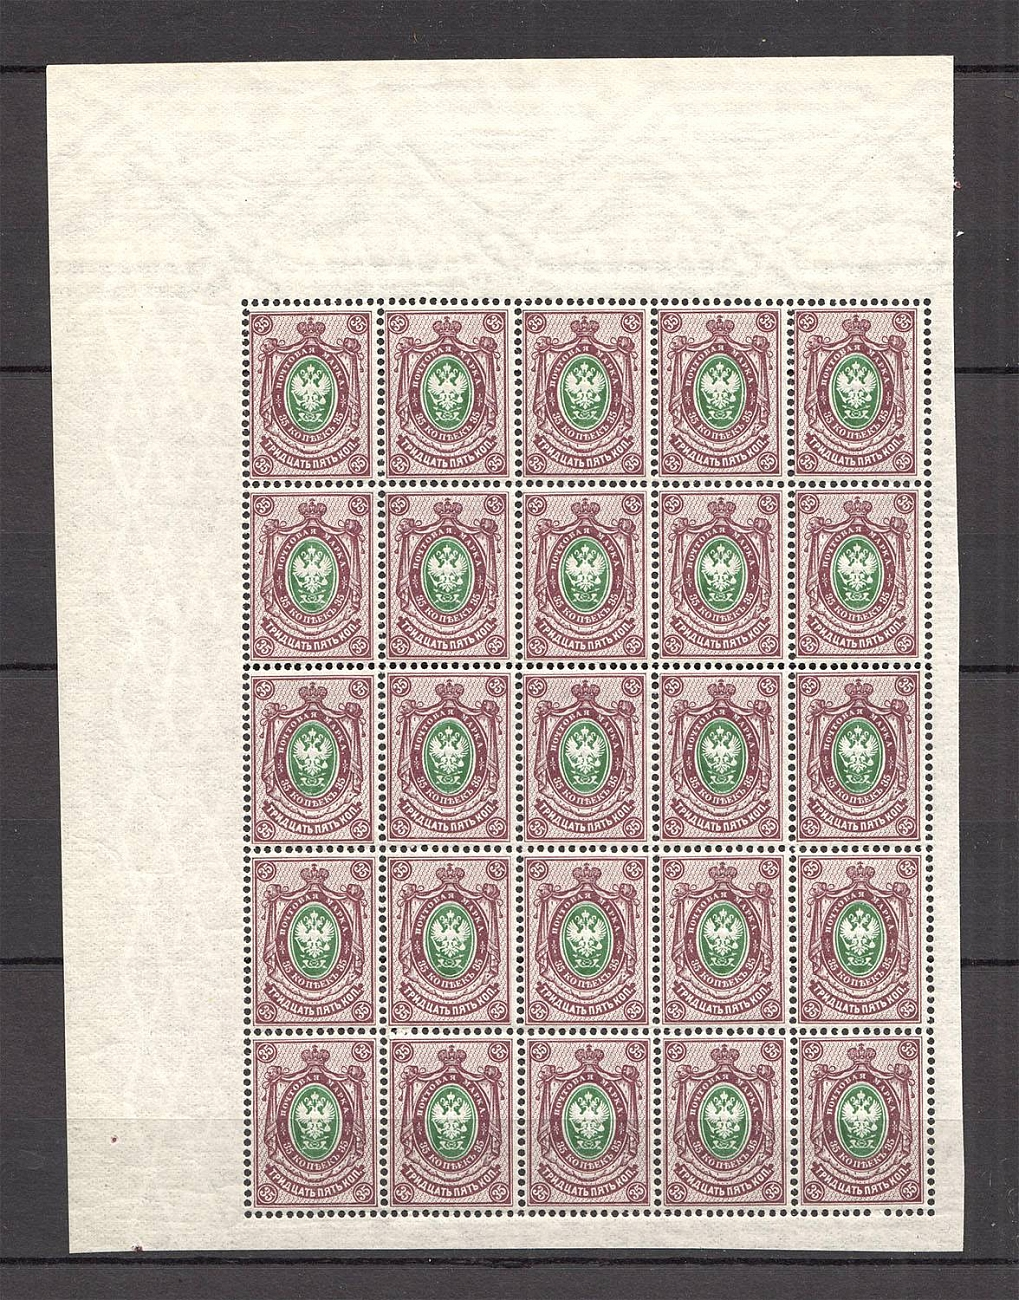 Lot 23 - Russia: Empire & Offices Abroad blocks -  OldLouis Auctions Russia: Empire & Offices Abroad - Rare Stamps Auction №8